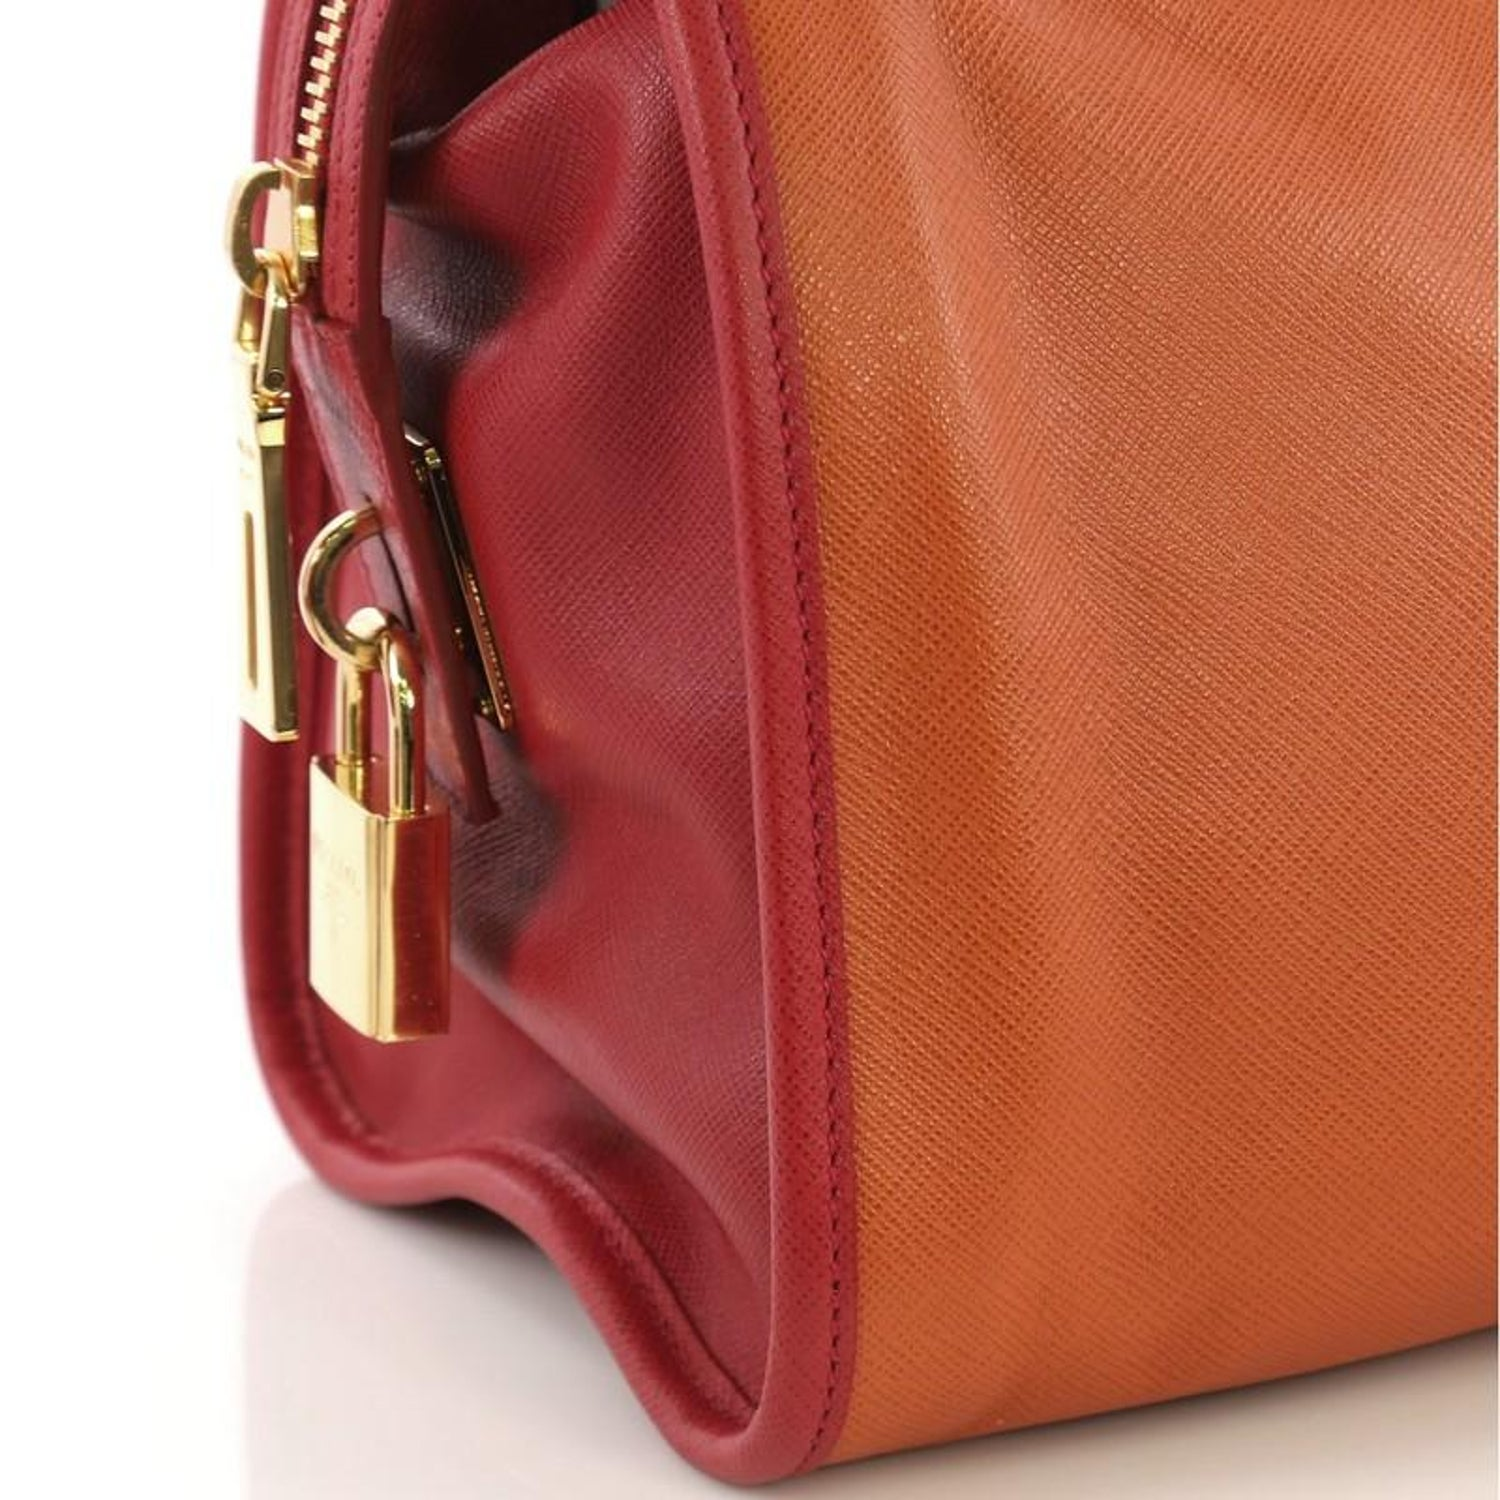 9667a3593f81 Prada Soft Triple Zip Satchel Saffiano Leather For Sale at 1stdibs